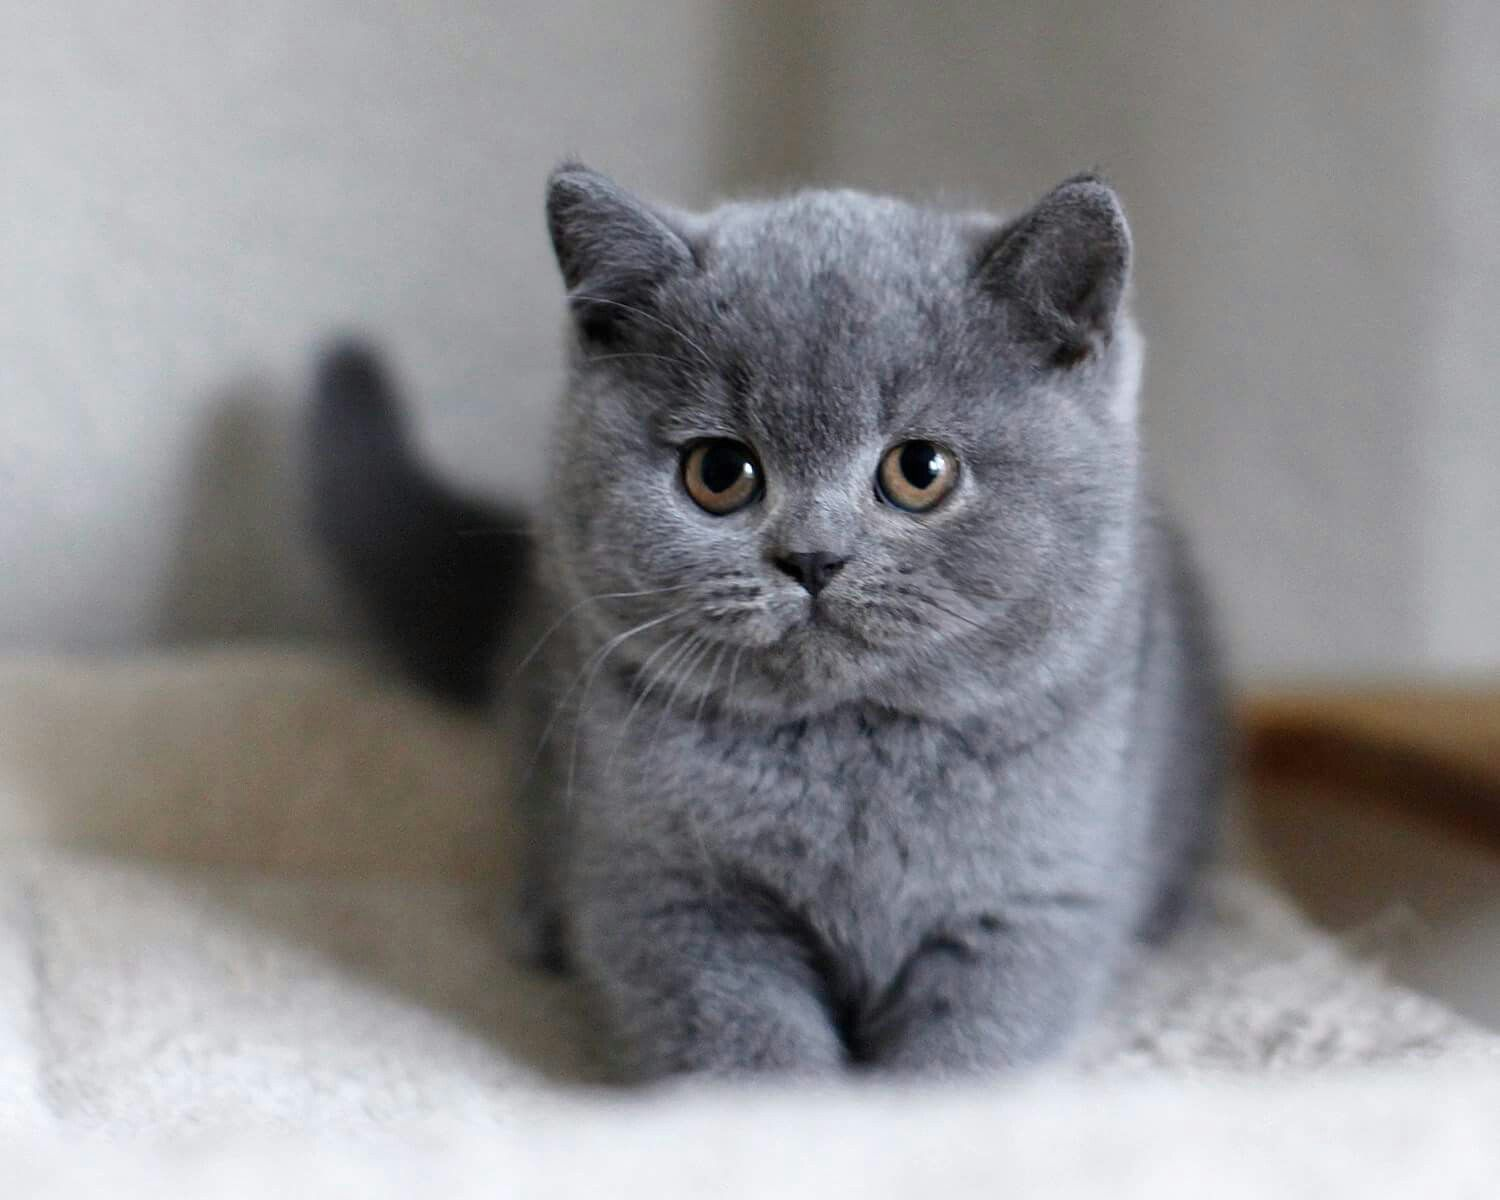 Pin By Caitlin Hawke On British Cats British Shorthair Cats British Shorthair Kittens Cute Baby Animals